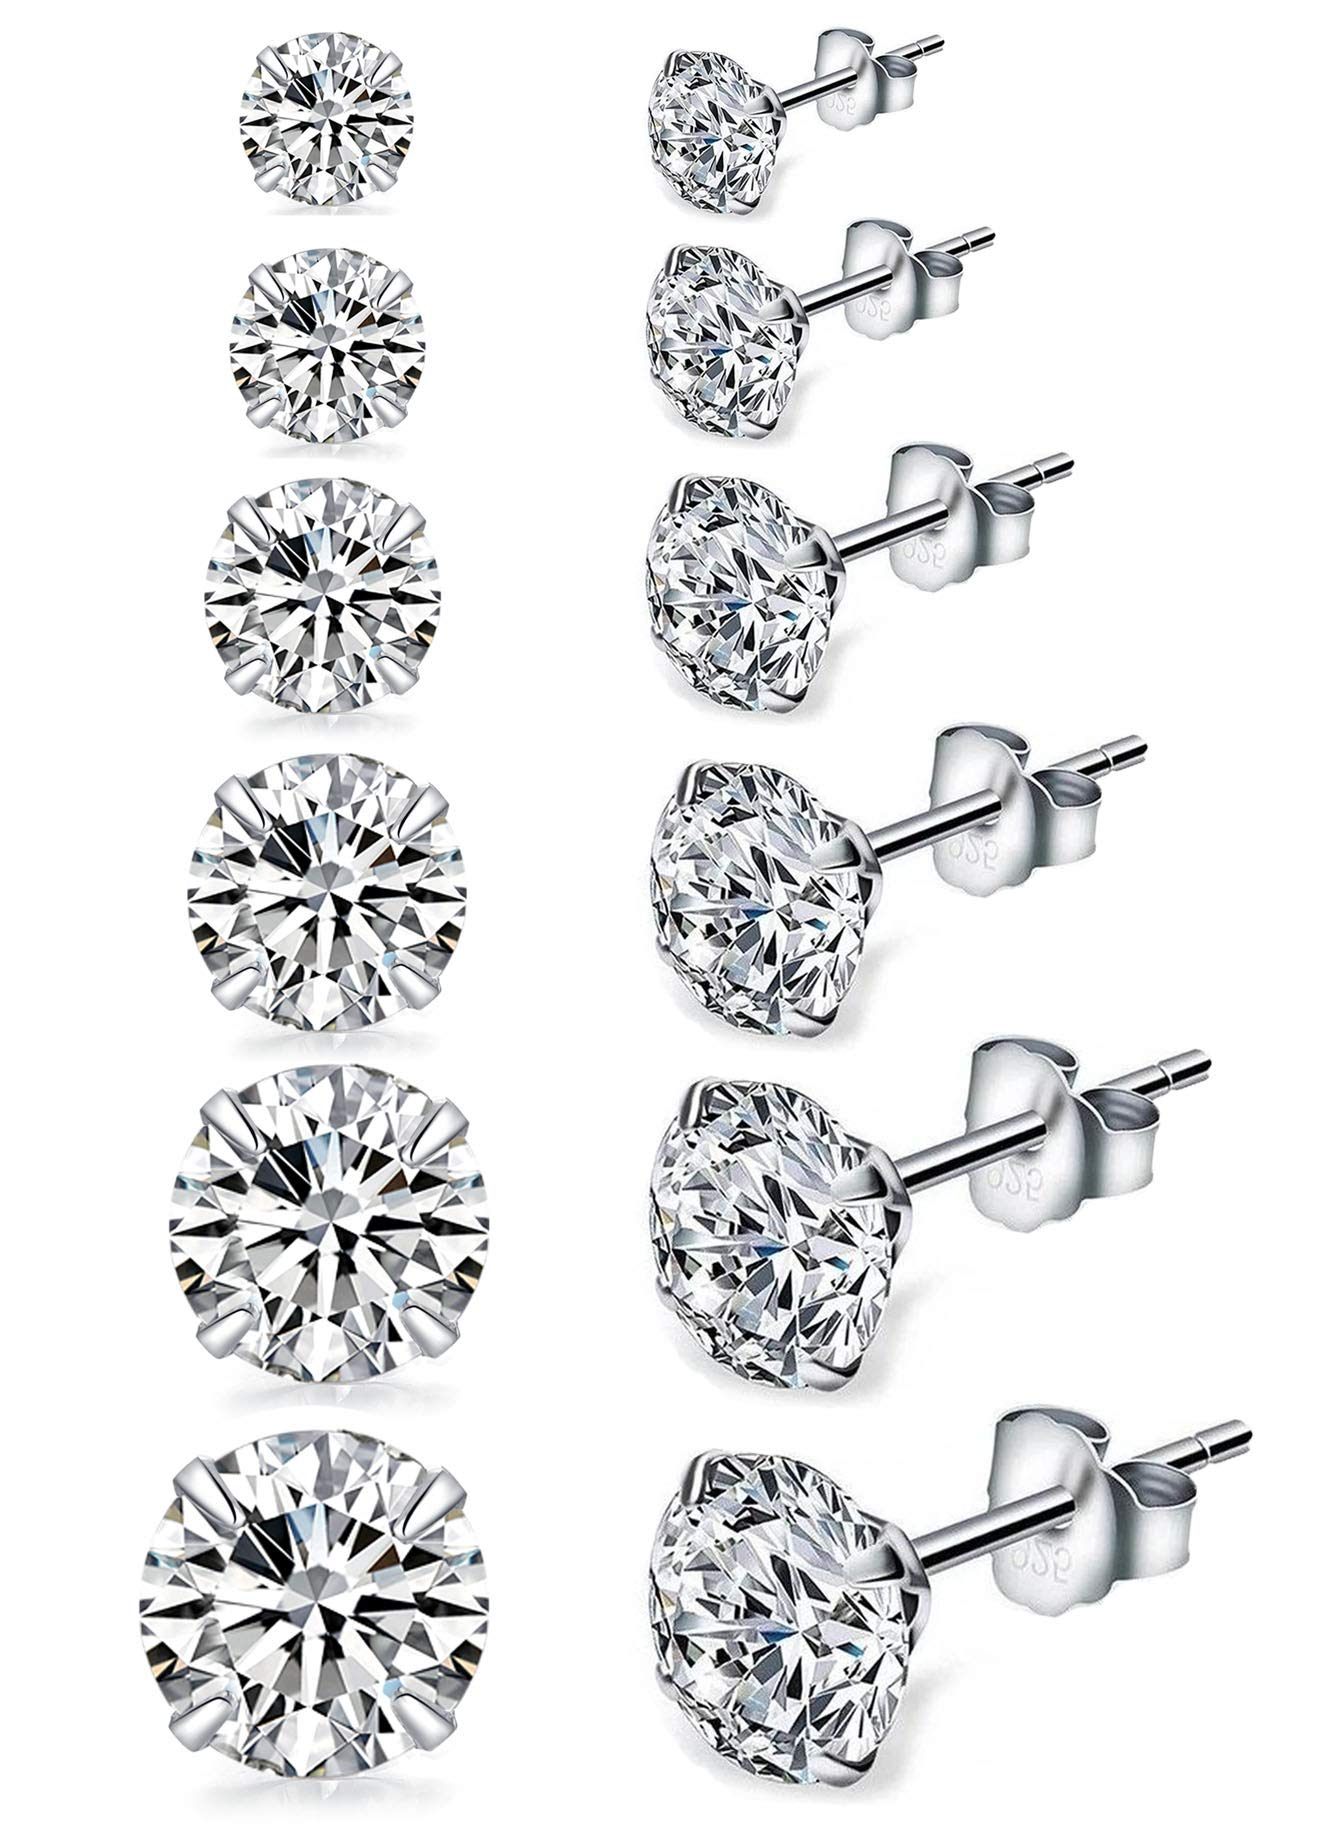 Sterling Silver CZ Studs Earrings, 6 Pairs, 14k Gold Post 4 Prong Pure Brilliance Diamond Stud Earrings for Women Mens Gilrs Children Sensitive Ears priercing (3/4/5/6/7/8mm Pack of 6) by Jinwelry